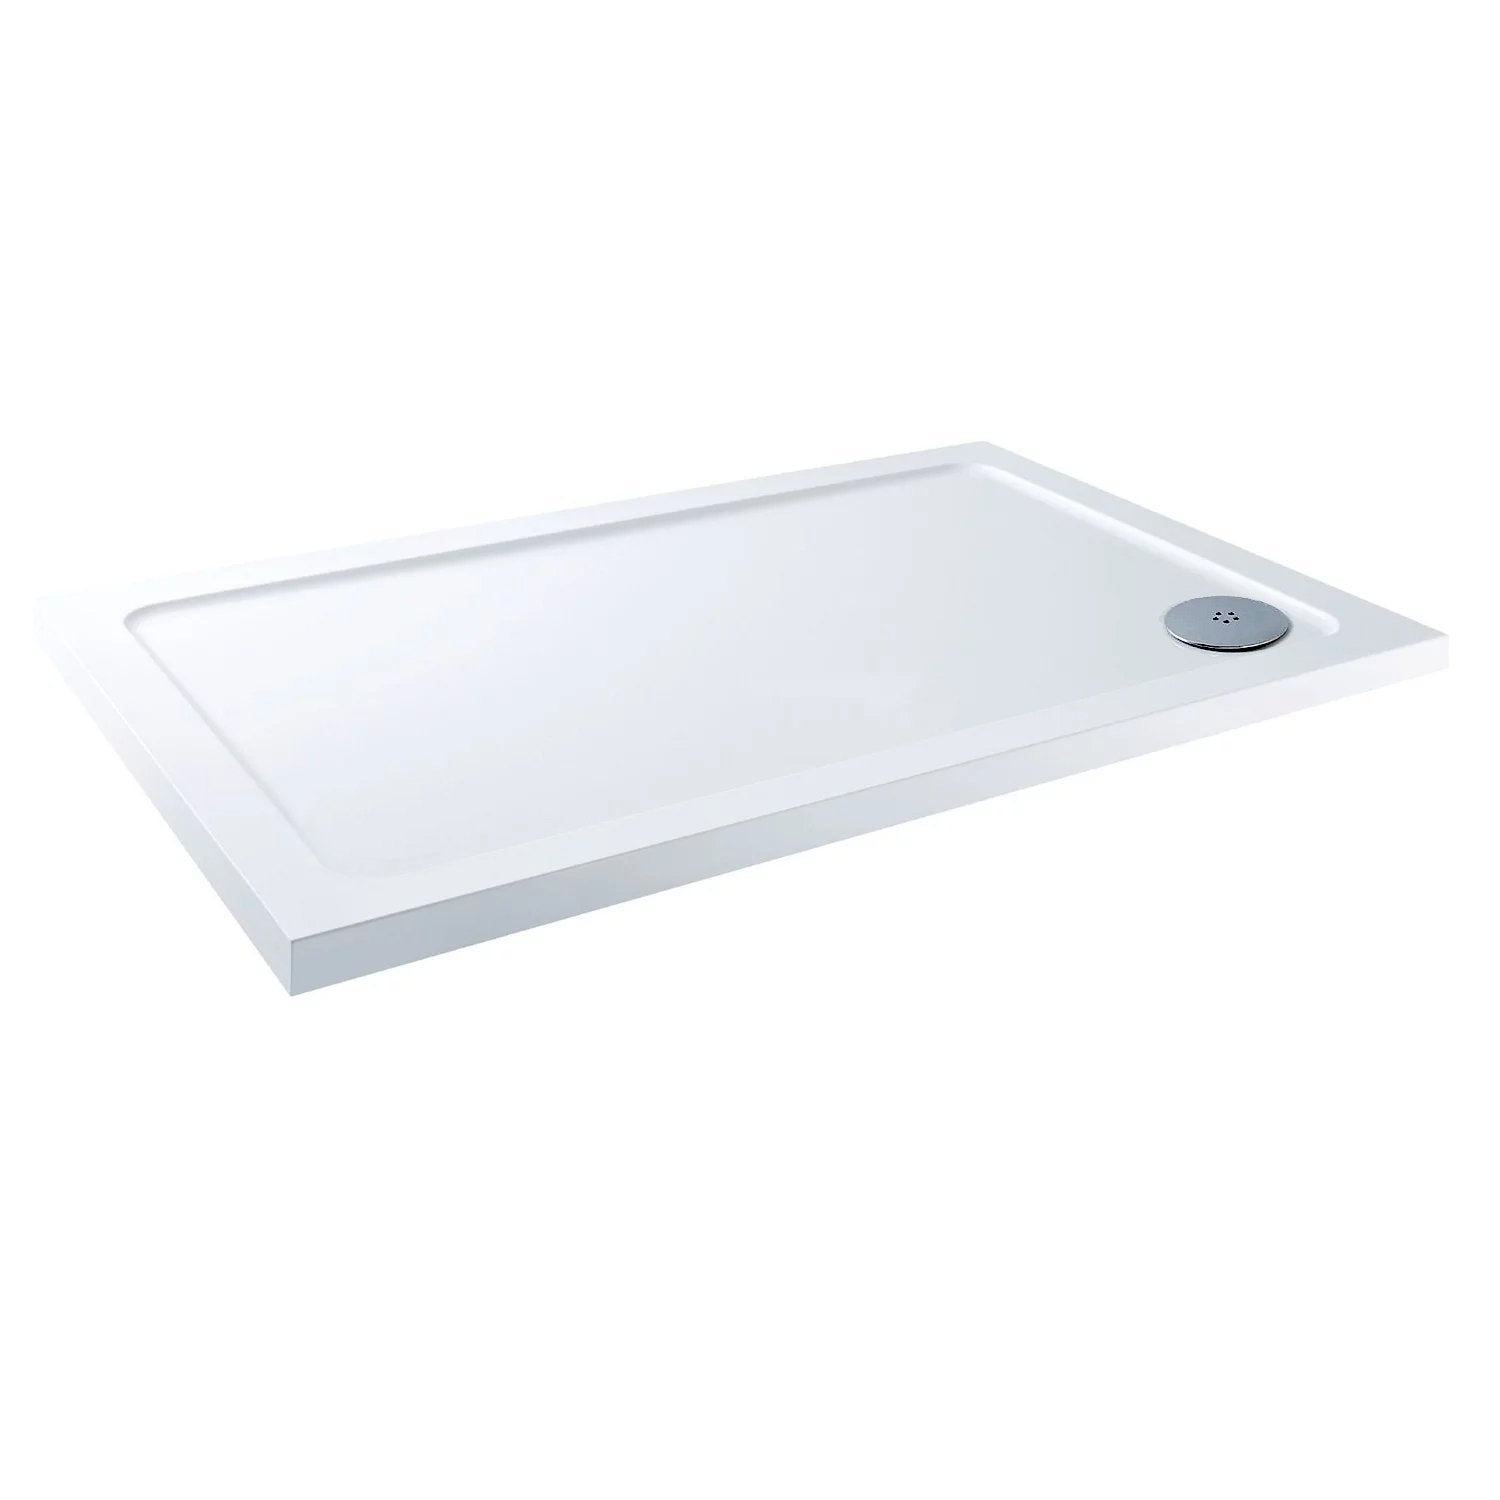 Cassellie C-Series Rectangular Shower Tray with Fast Flow Waste - 1200mm x 760mm - Stone Resin